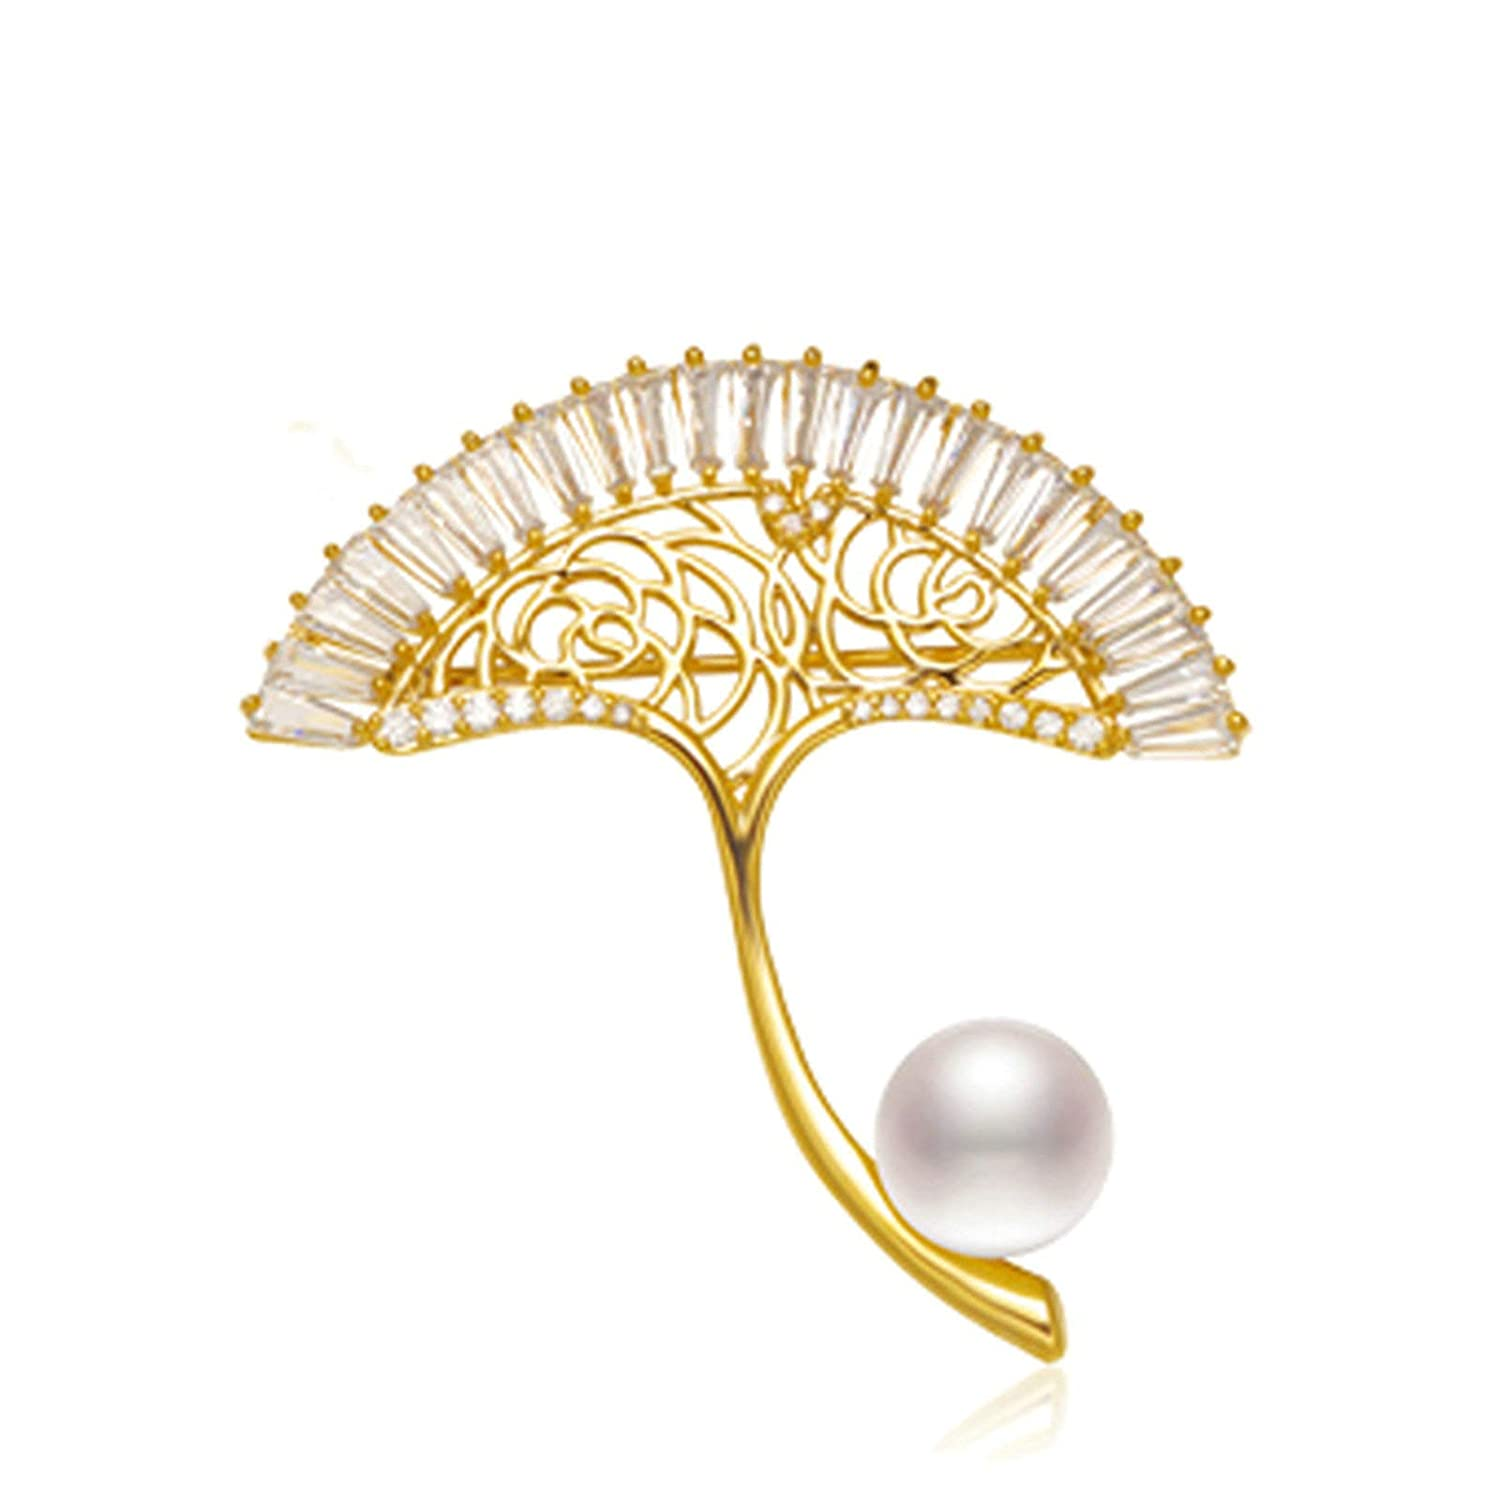 Epinki Jewelry Platinum Plated Brooches for Women Pearl Brooches Anniversary Birthday Wedding